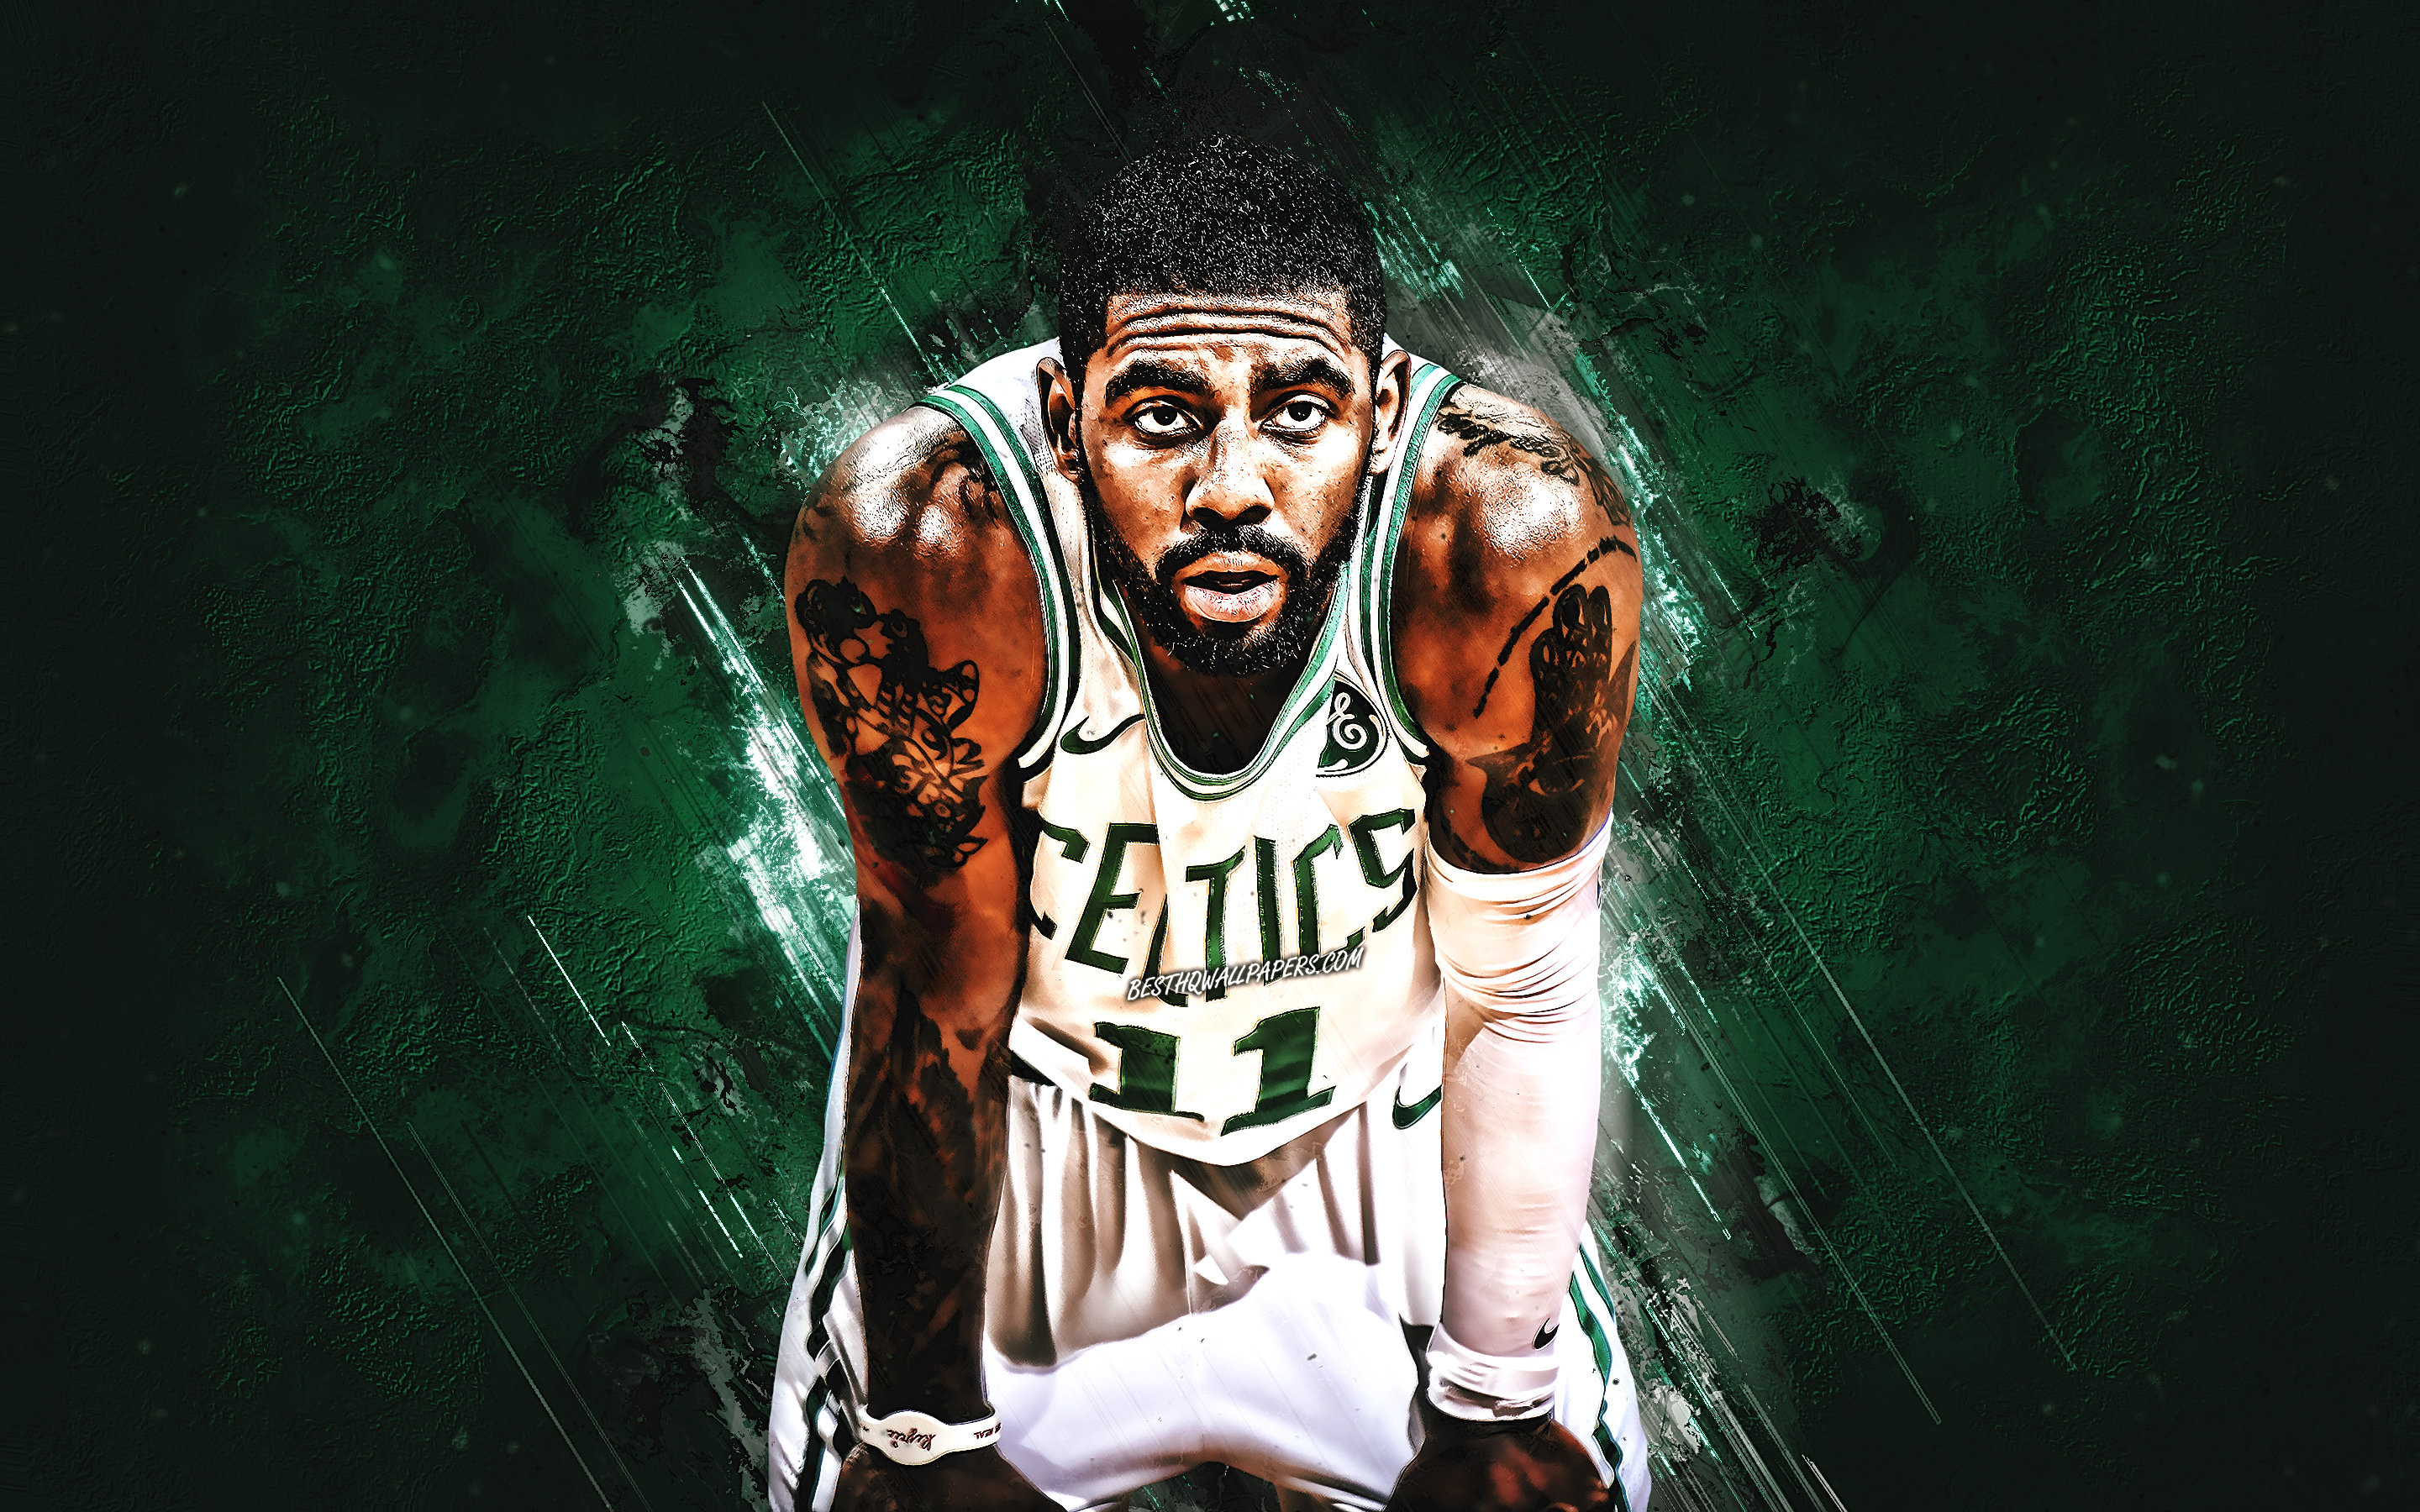 Kyrie Irving, Green Stone, Boston Celtics, Nba, Basketball - Kyrie Irving Wall Paper , HD Wallpaper & Backgrounds